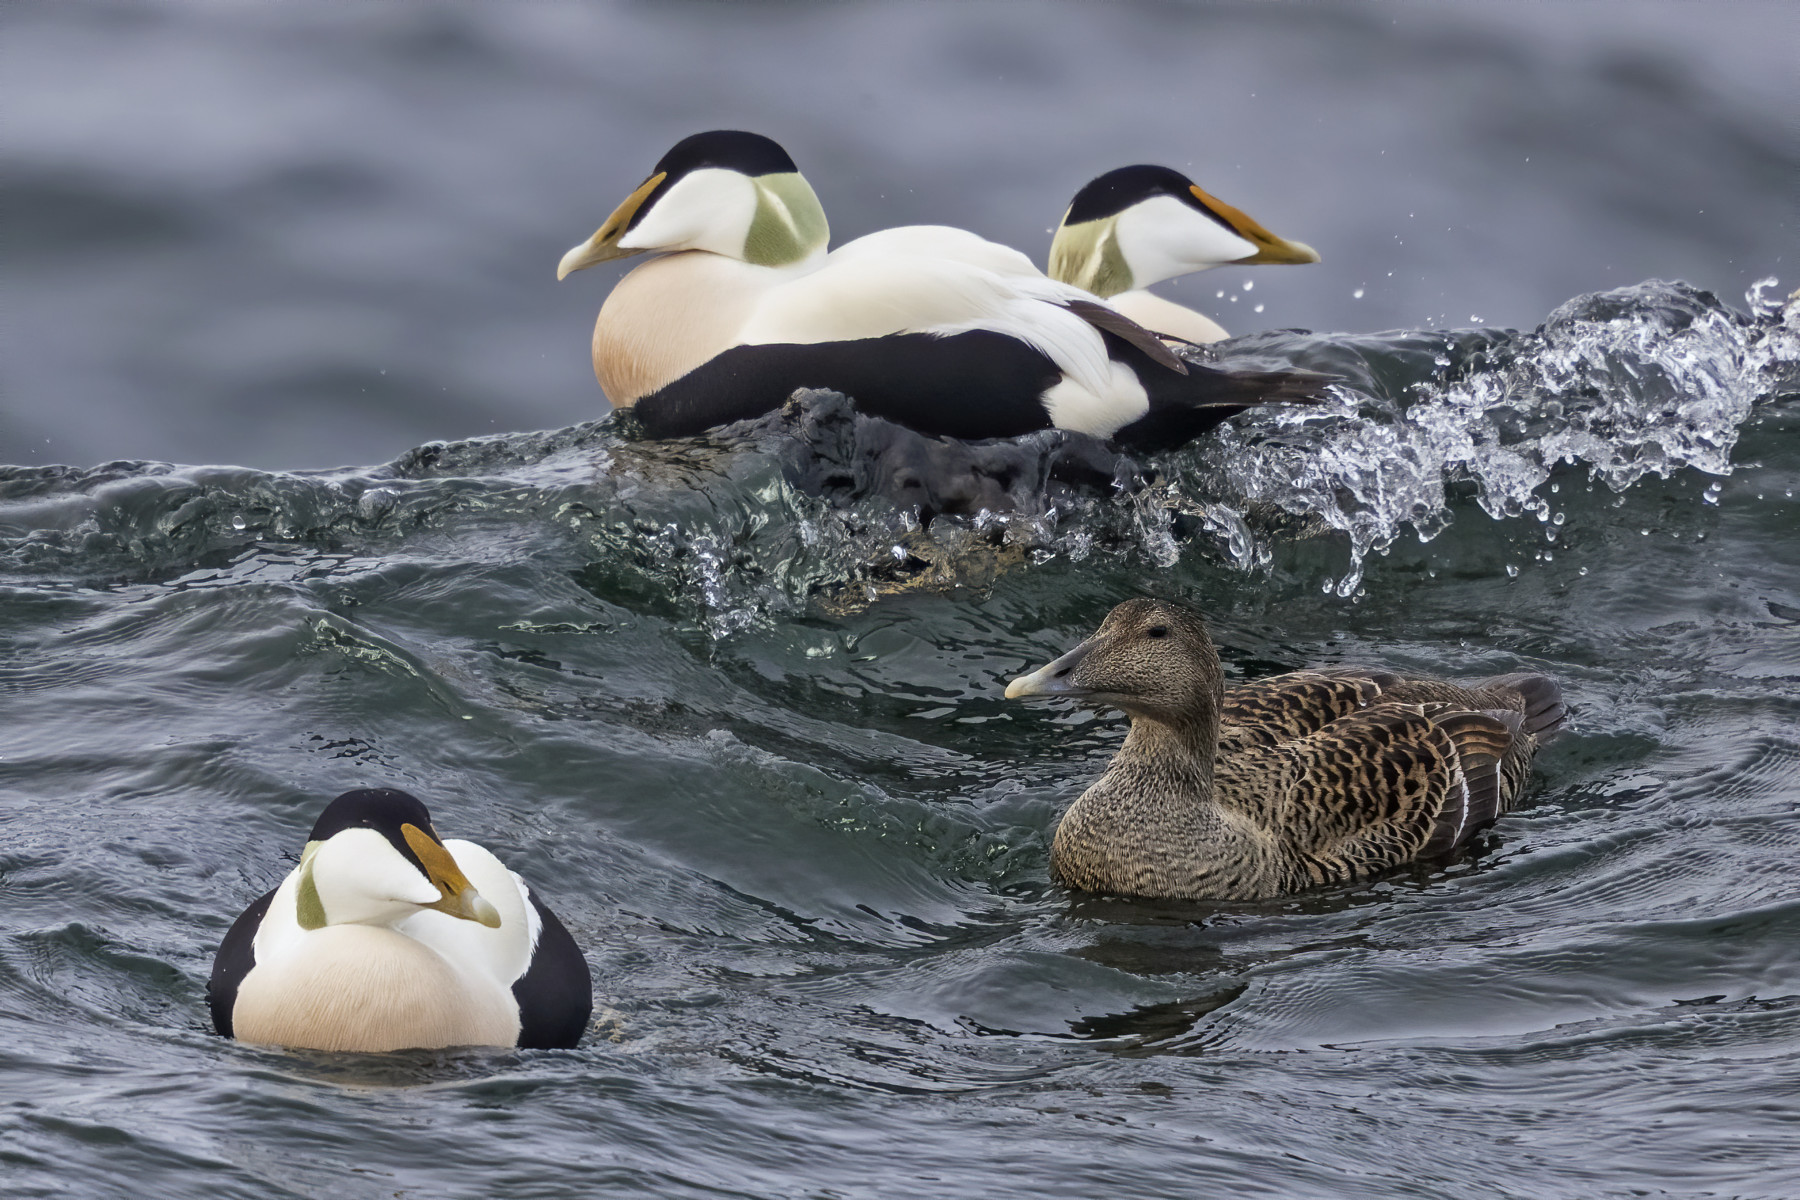 Four duck-like birds float on a wave.